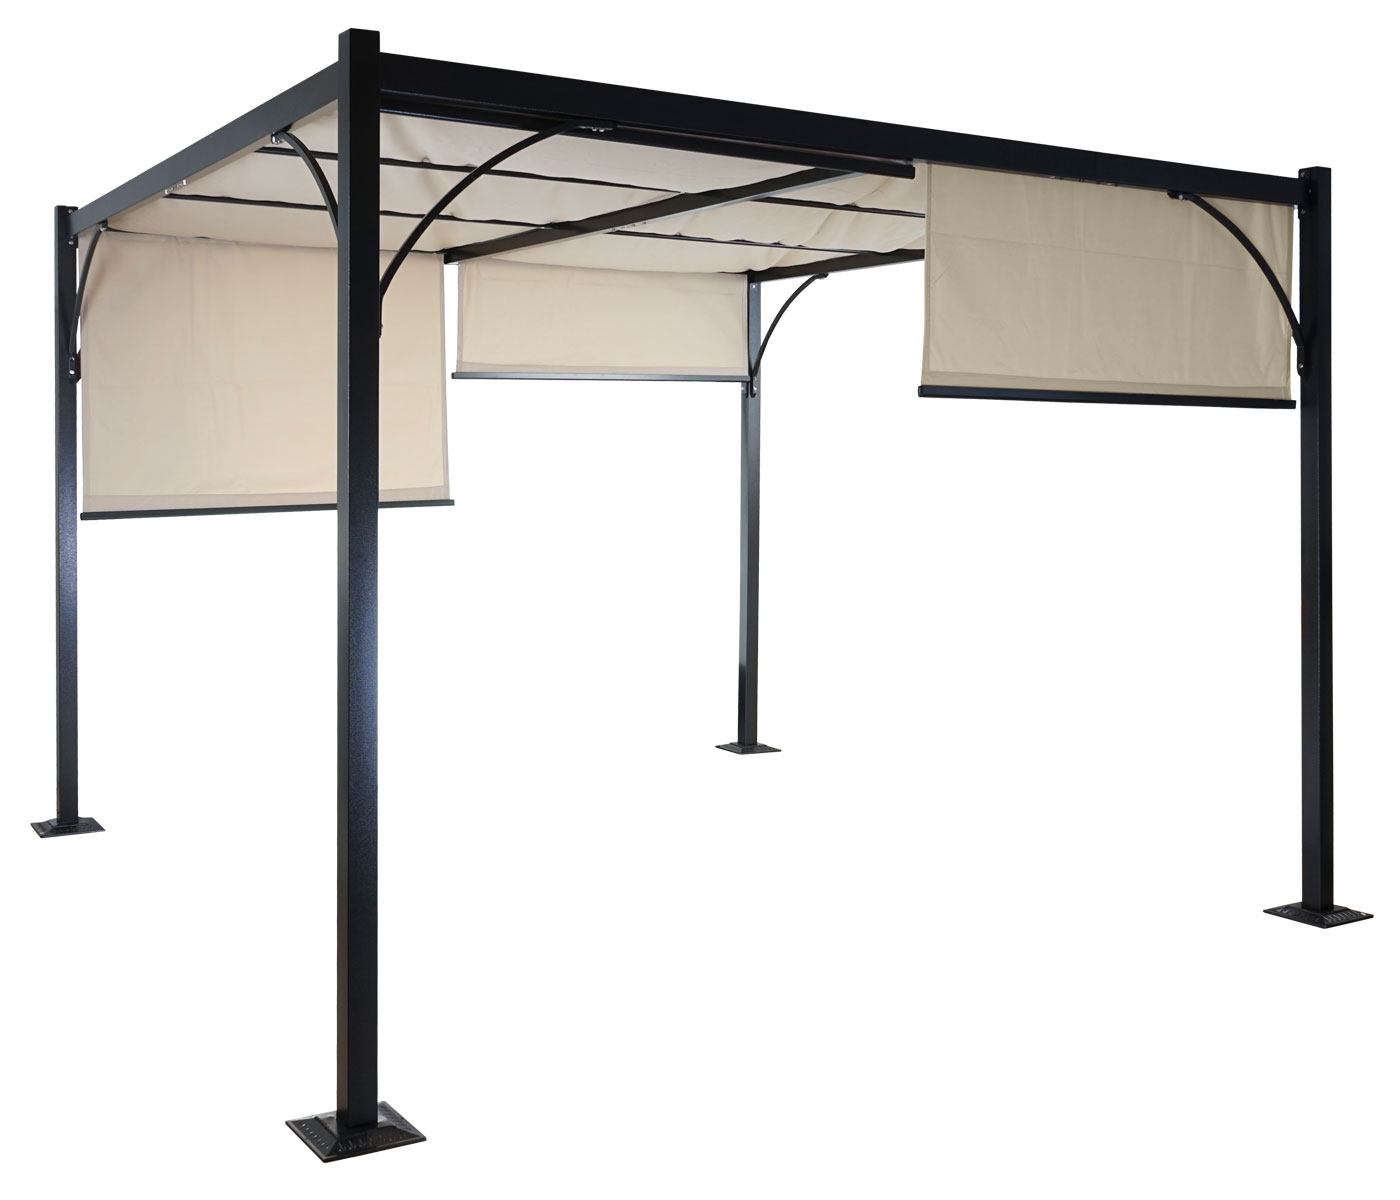 pergola granada pavillon stabiles 6cm alu gestell. Black Bedroom Furniture Sets. Home Design Ideas